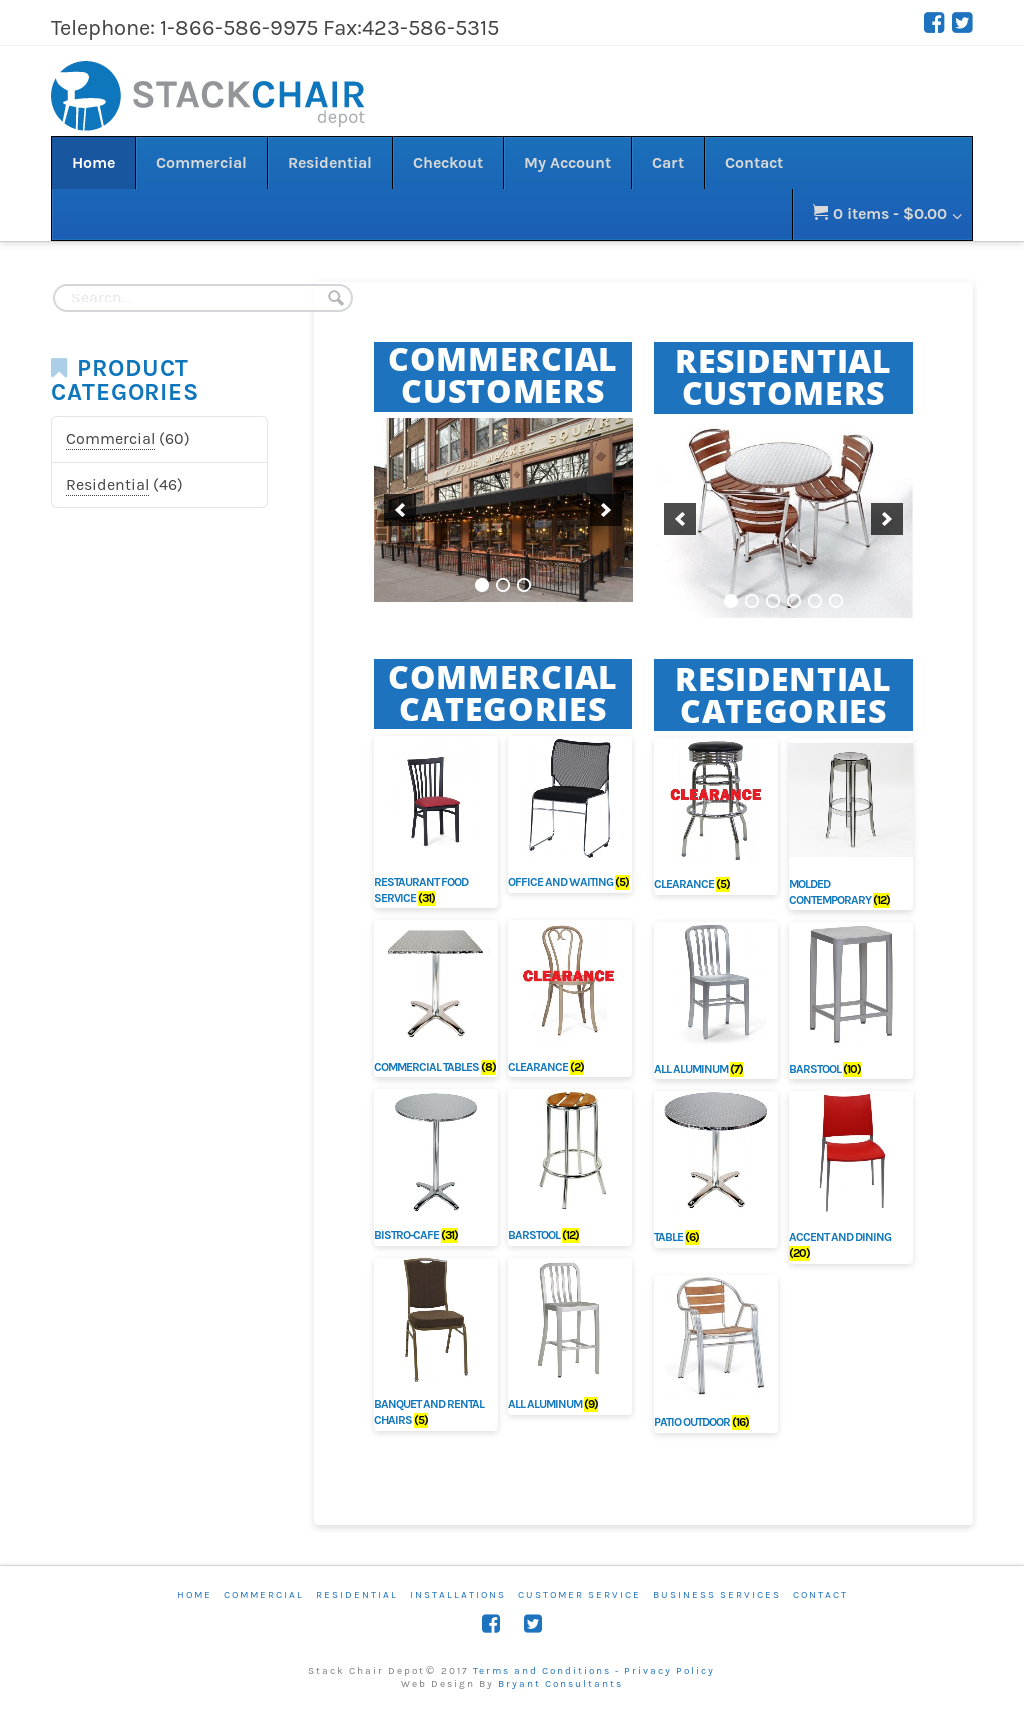 Stack Chair Depot Website History